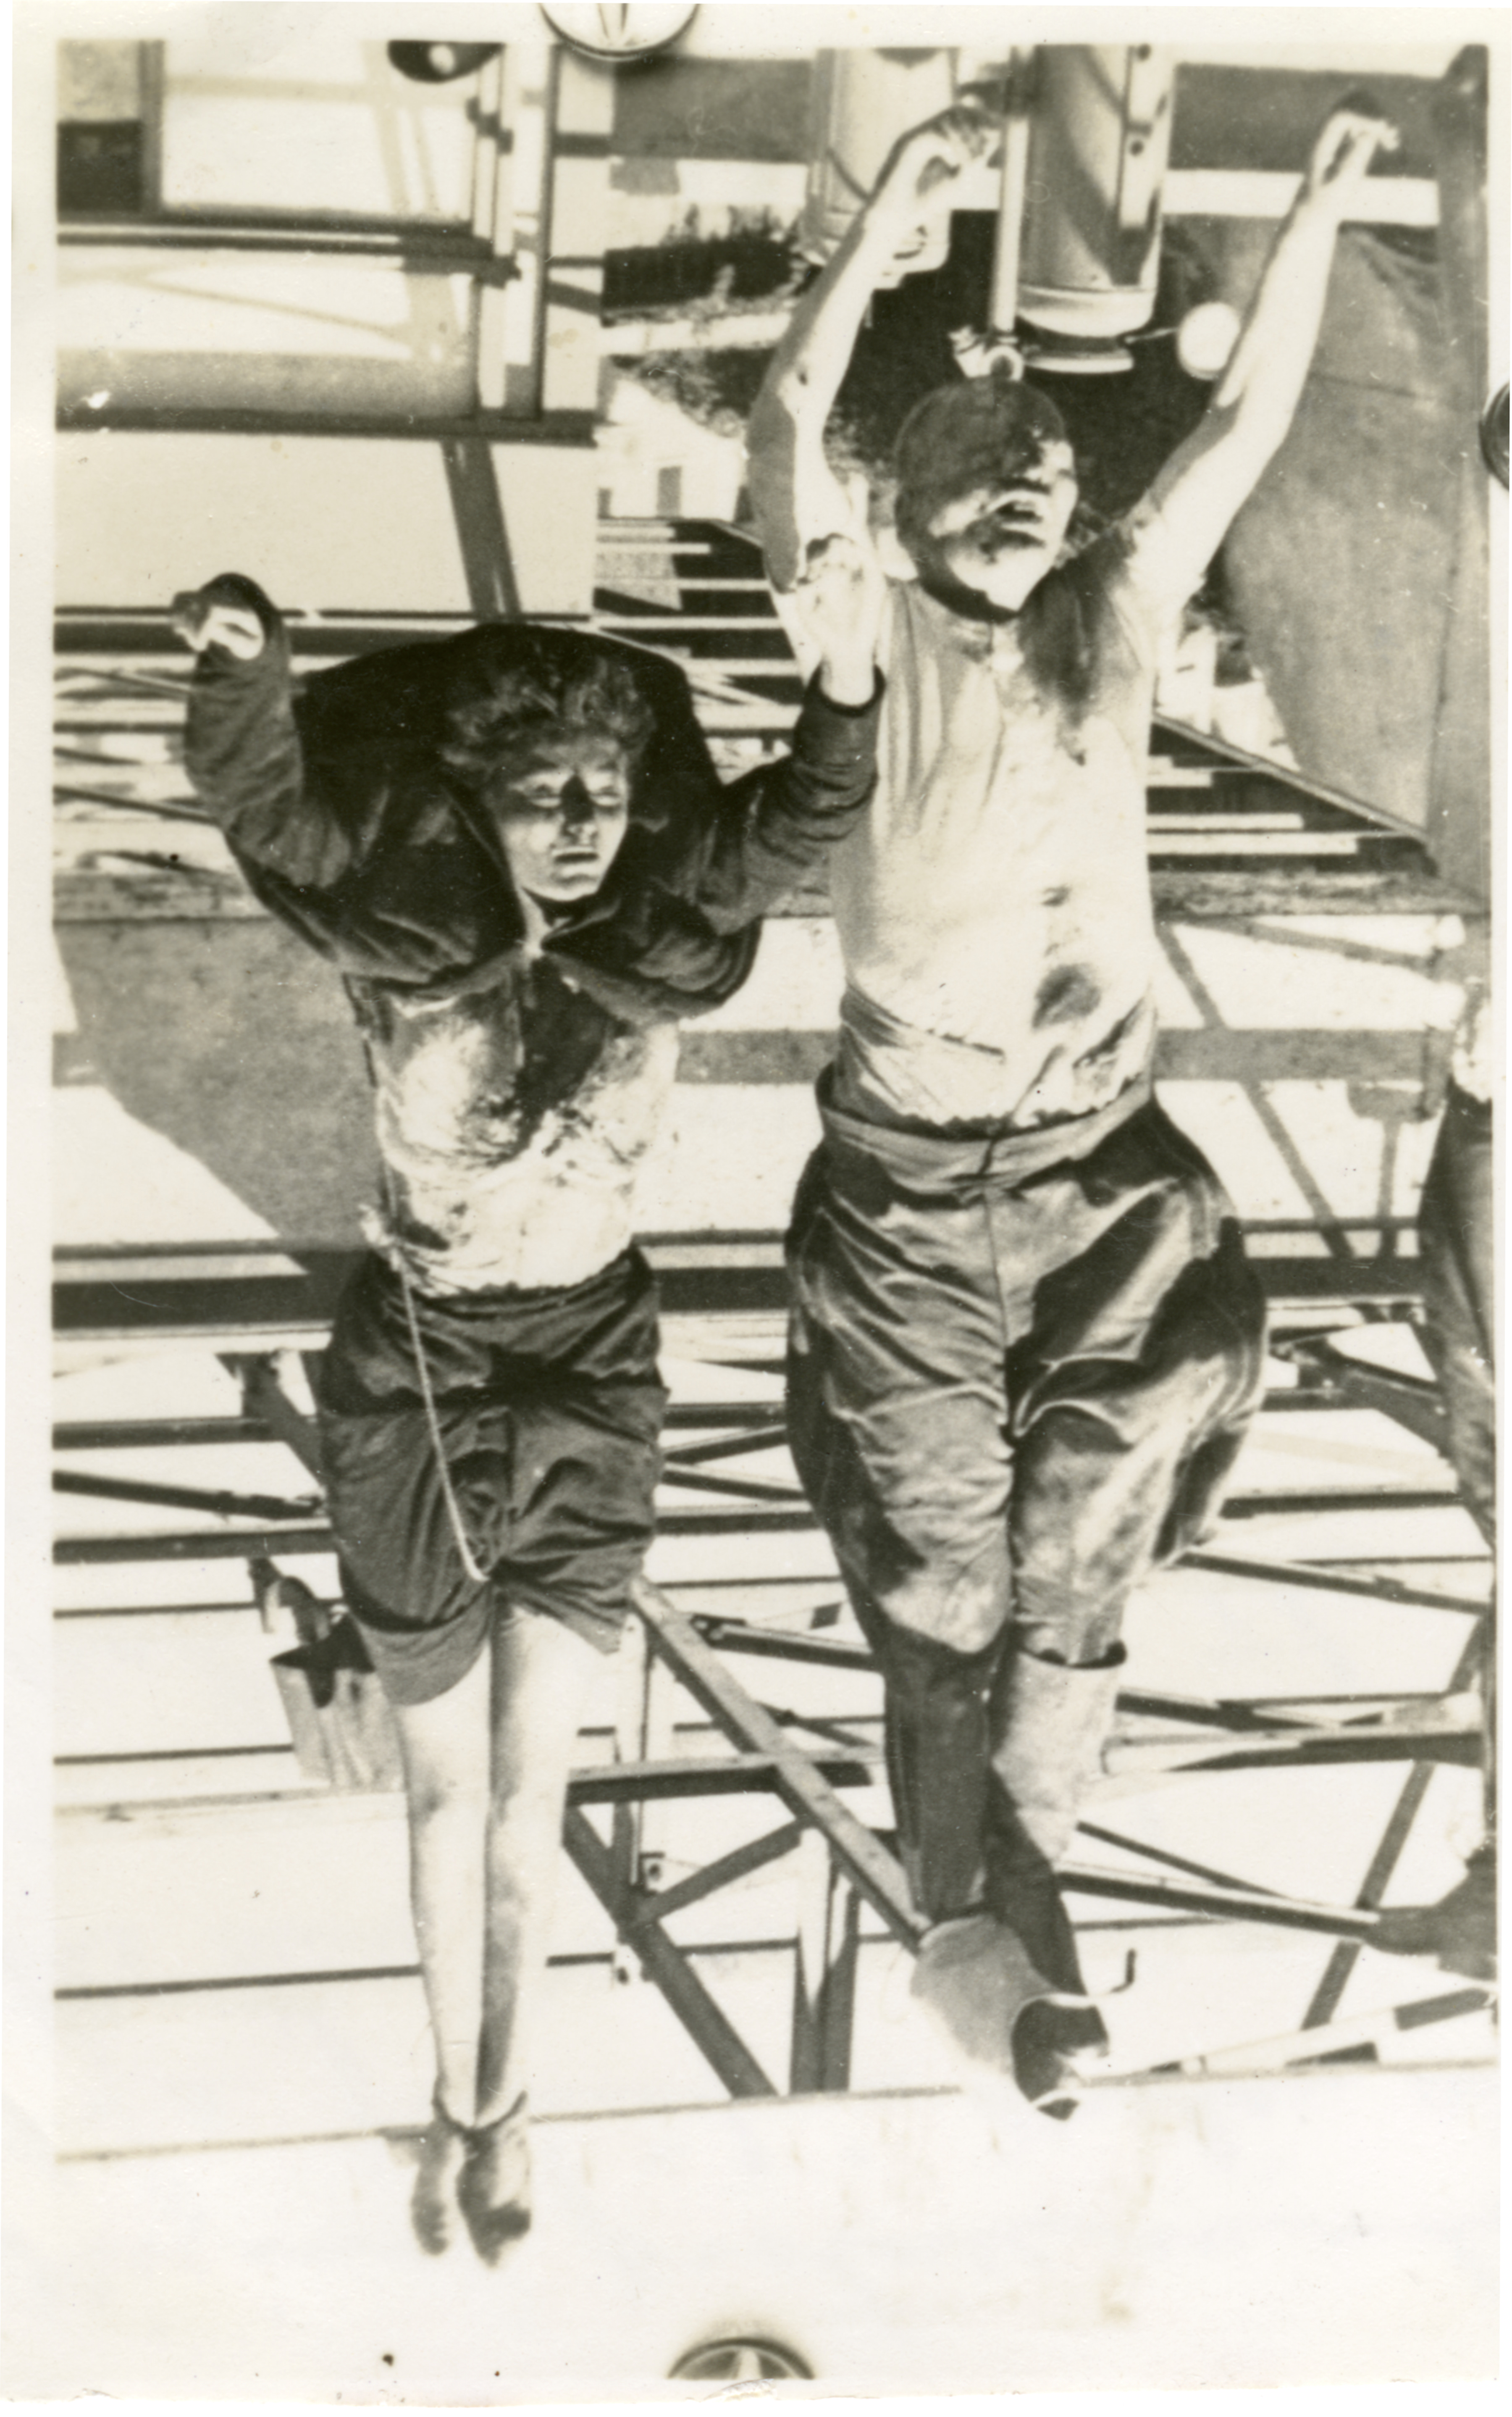 Benito Mussolini and Clara Petacci hanging after execution